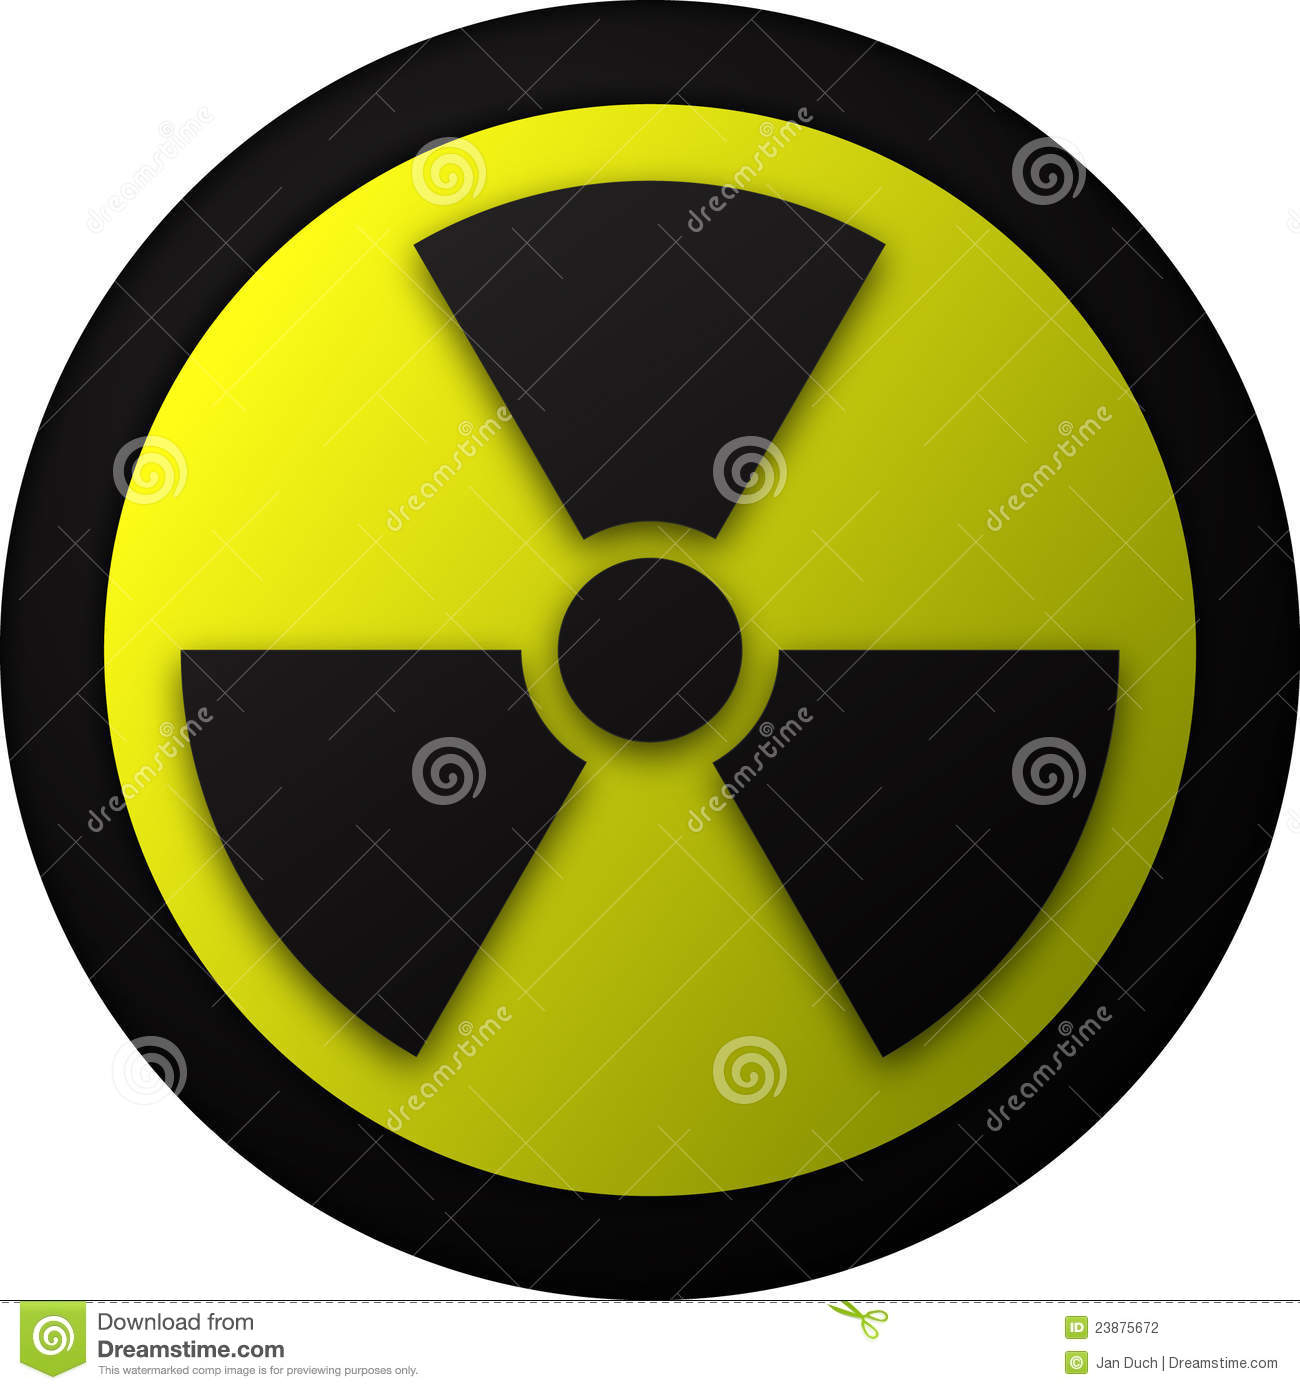 Nuclear warning symbol illustration